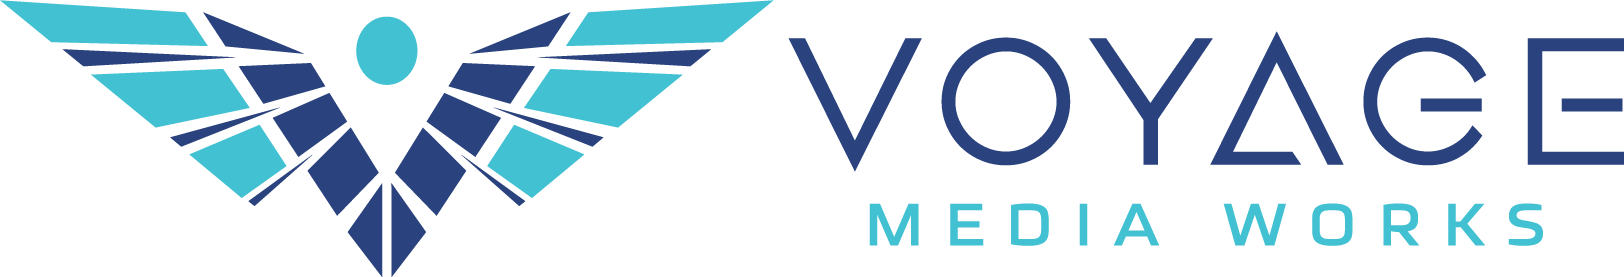 Voyage Media Works